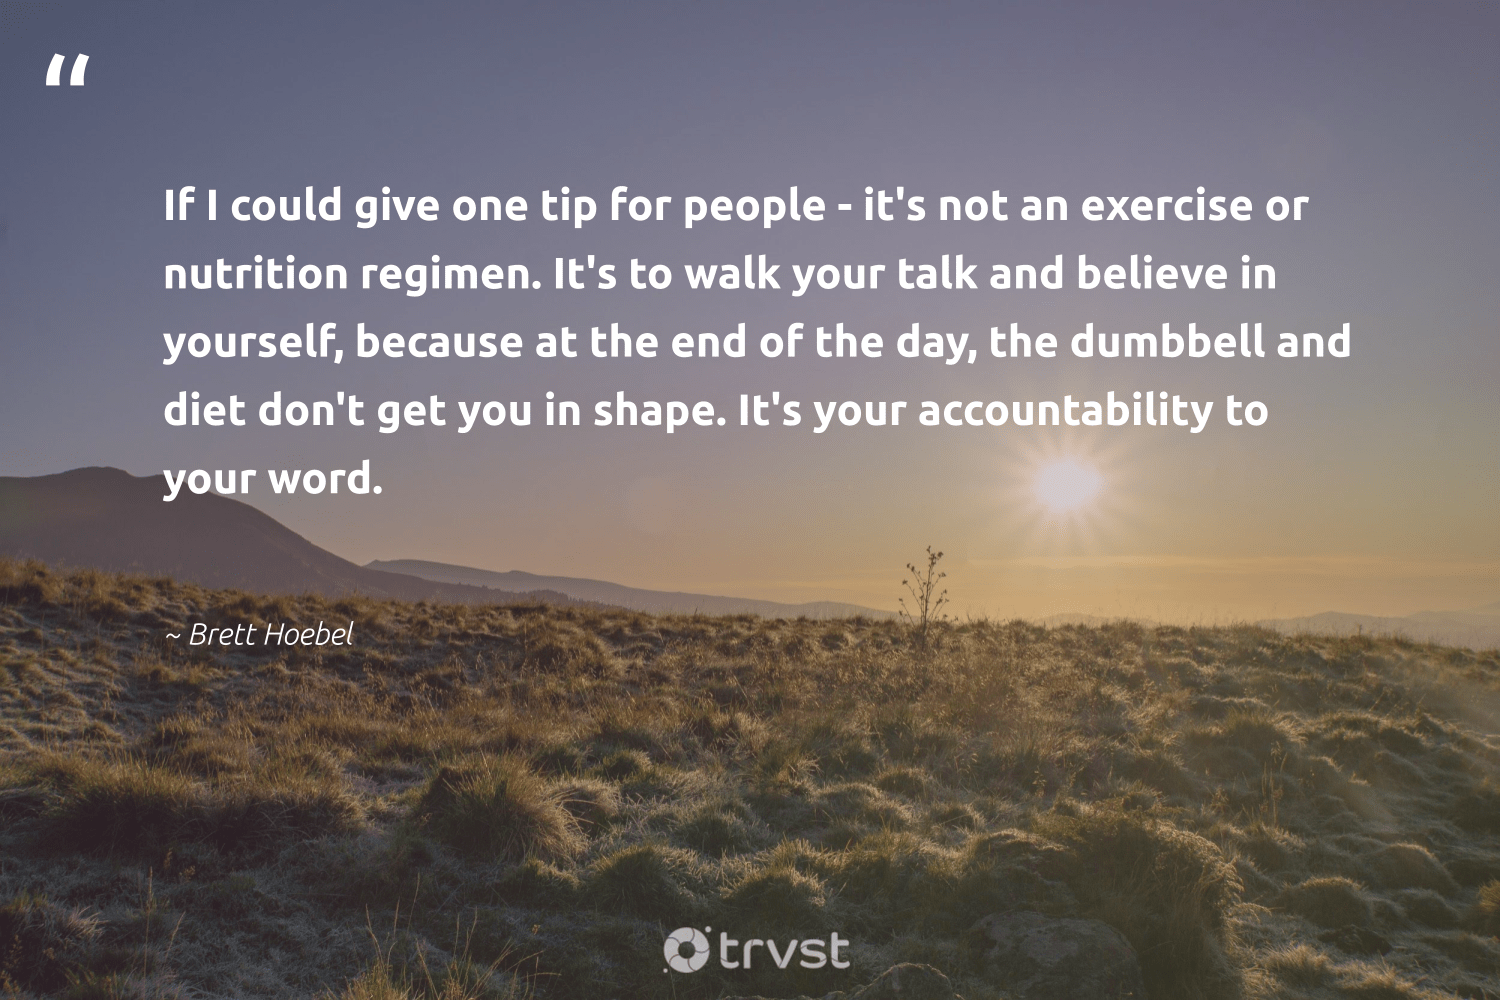 """If I could give one tip for people - it's not an exercise or nutrition regimen. It's to walk your talk and believe in yourself, because at the end of the day, the dumbbell and diet don't get you in shape. It's your accountability to your word.""  - Brett Hoebel #trvst #quotes #eatclean #nutrition #exercise #nevergiveup #begreat #socialchange #healthylifestyle #health #togetherwecan #dogood"